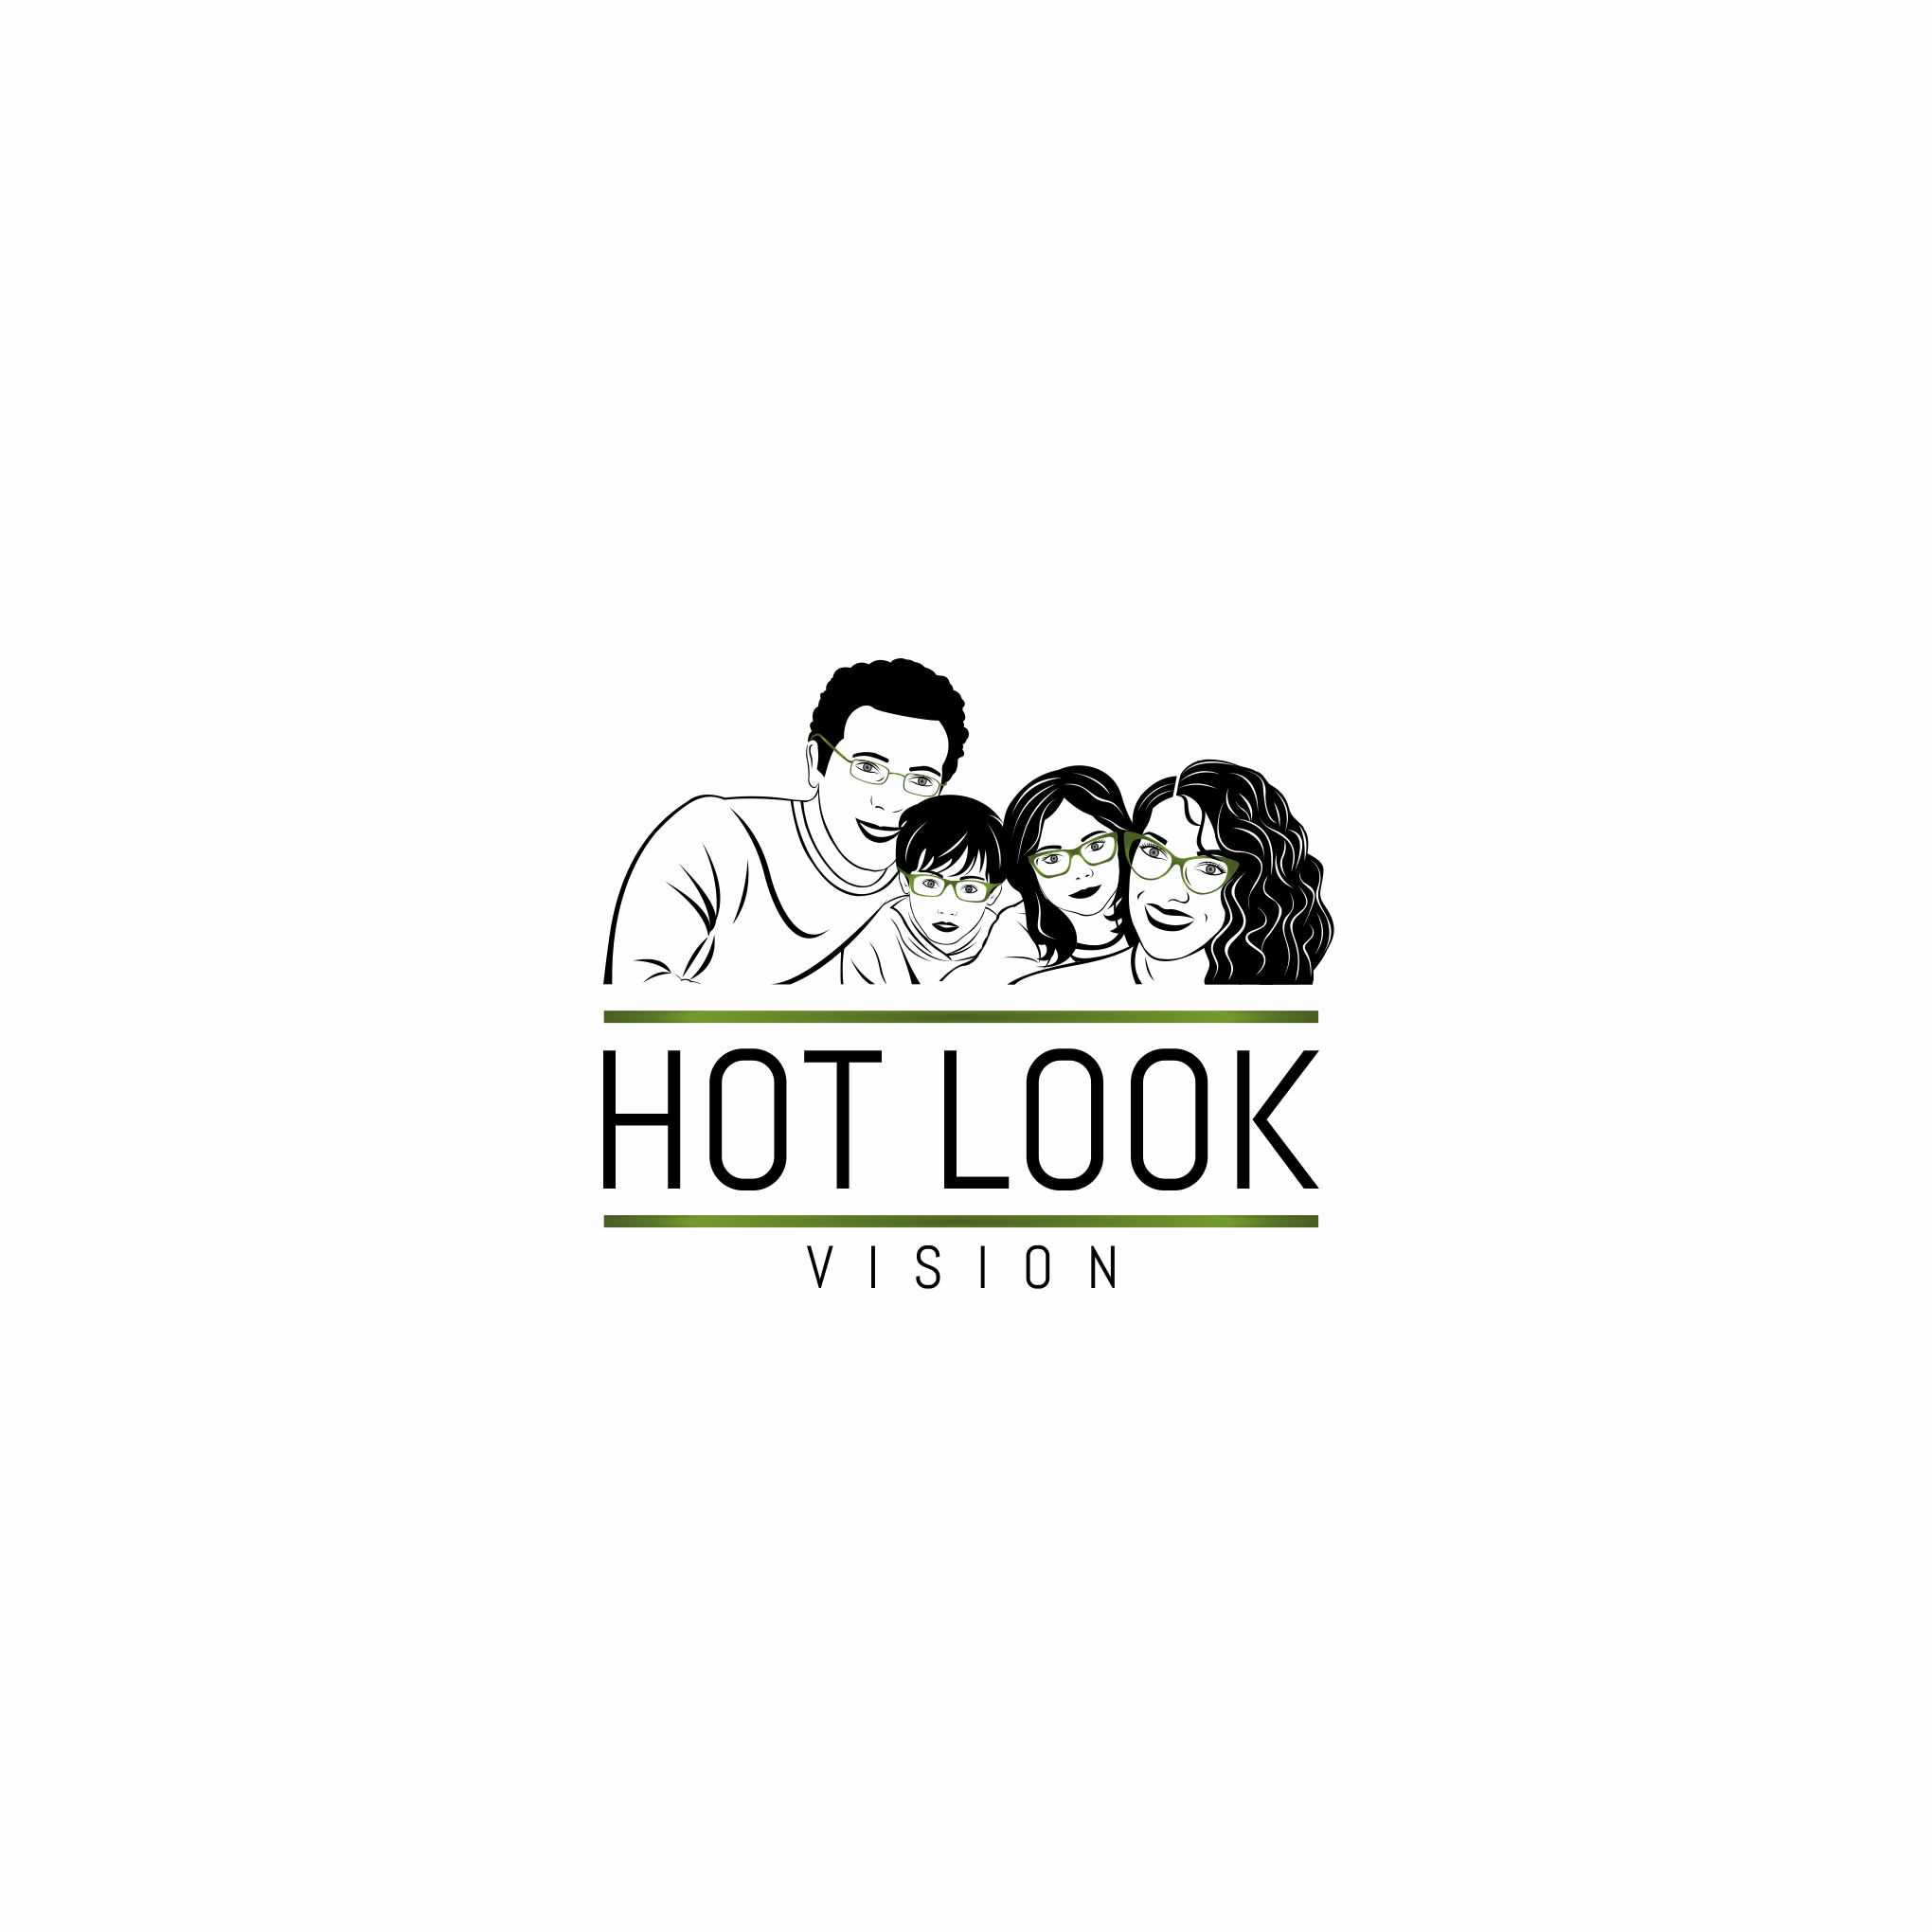 HOT LOOK - Vision ( optical stores in the Caribbean islands )